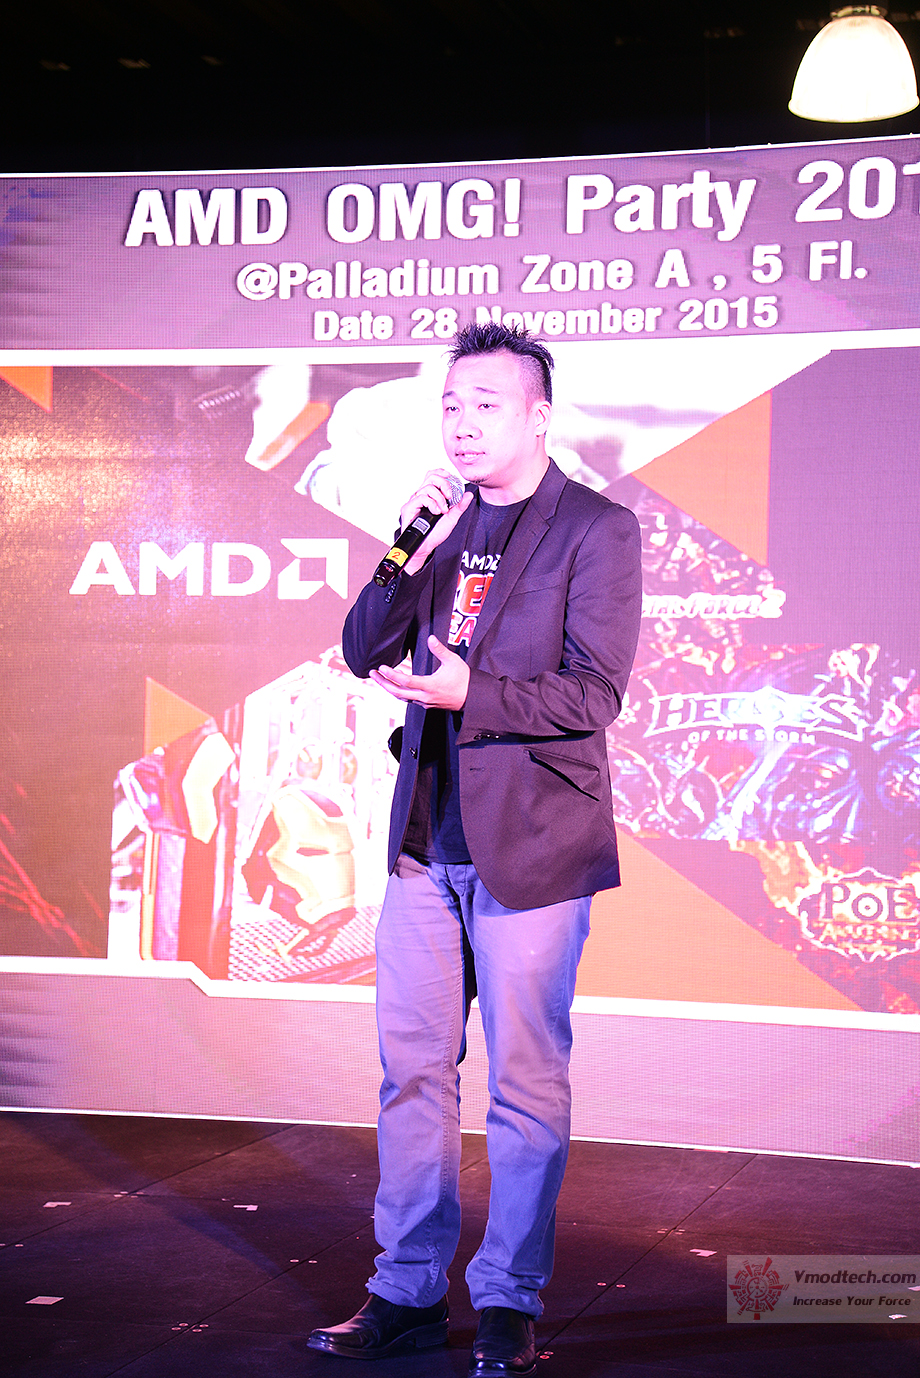 dsc 6536 AMD OMG! Party 2015 (AMD Overclock Modding Gaming Party 2015)